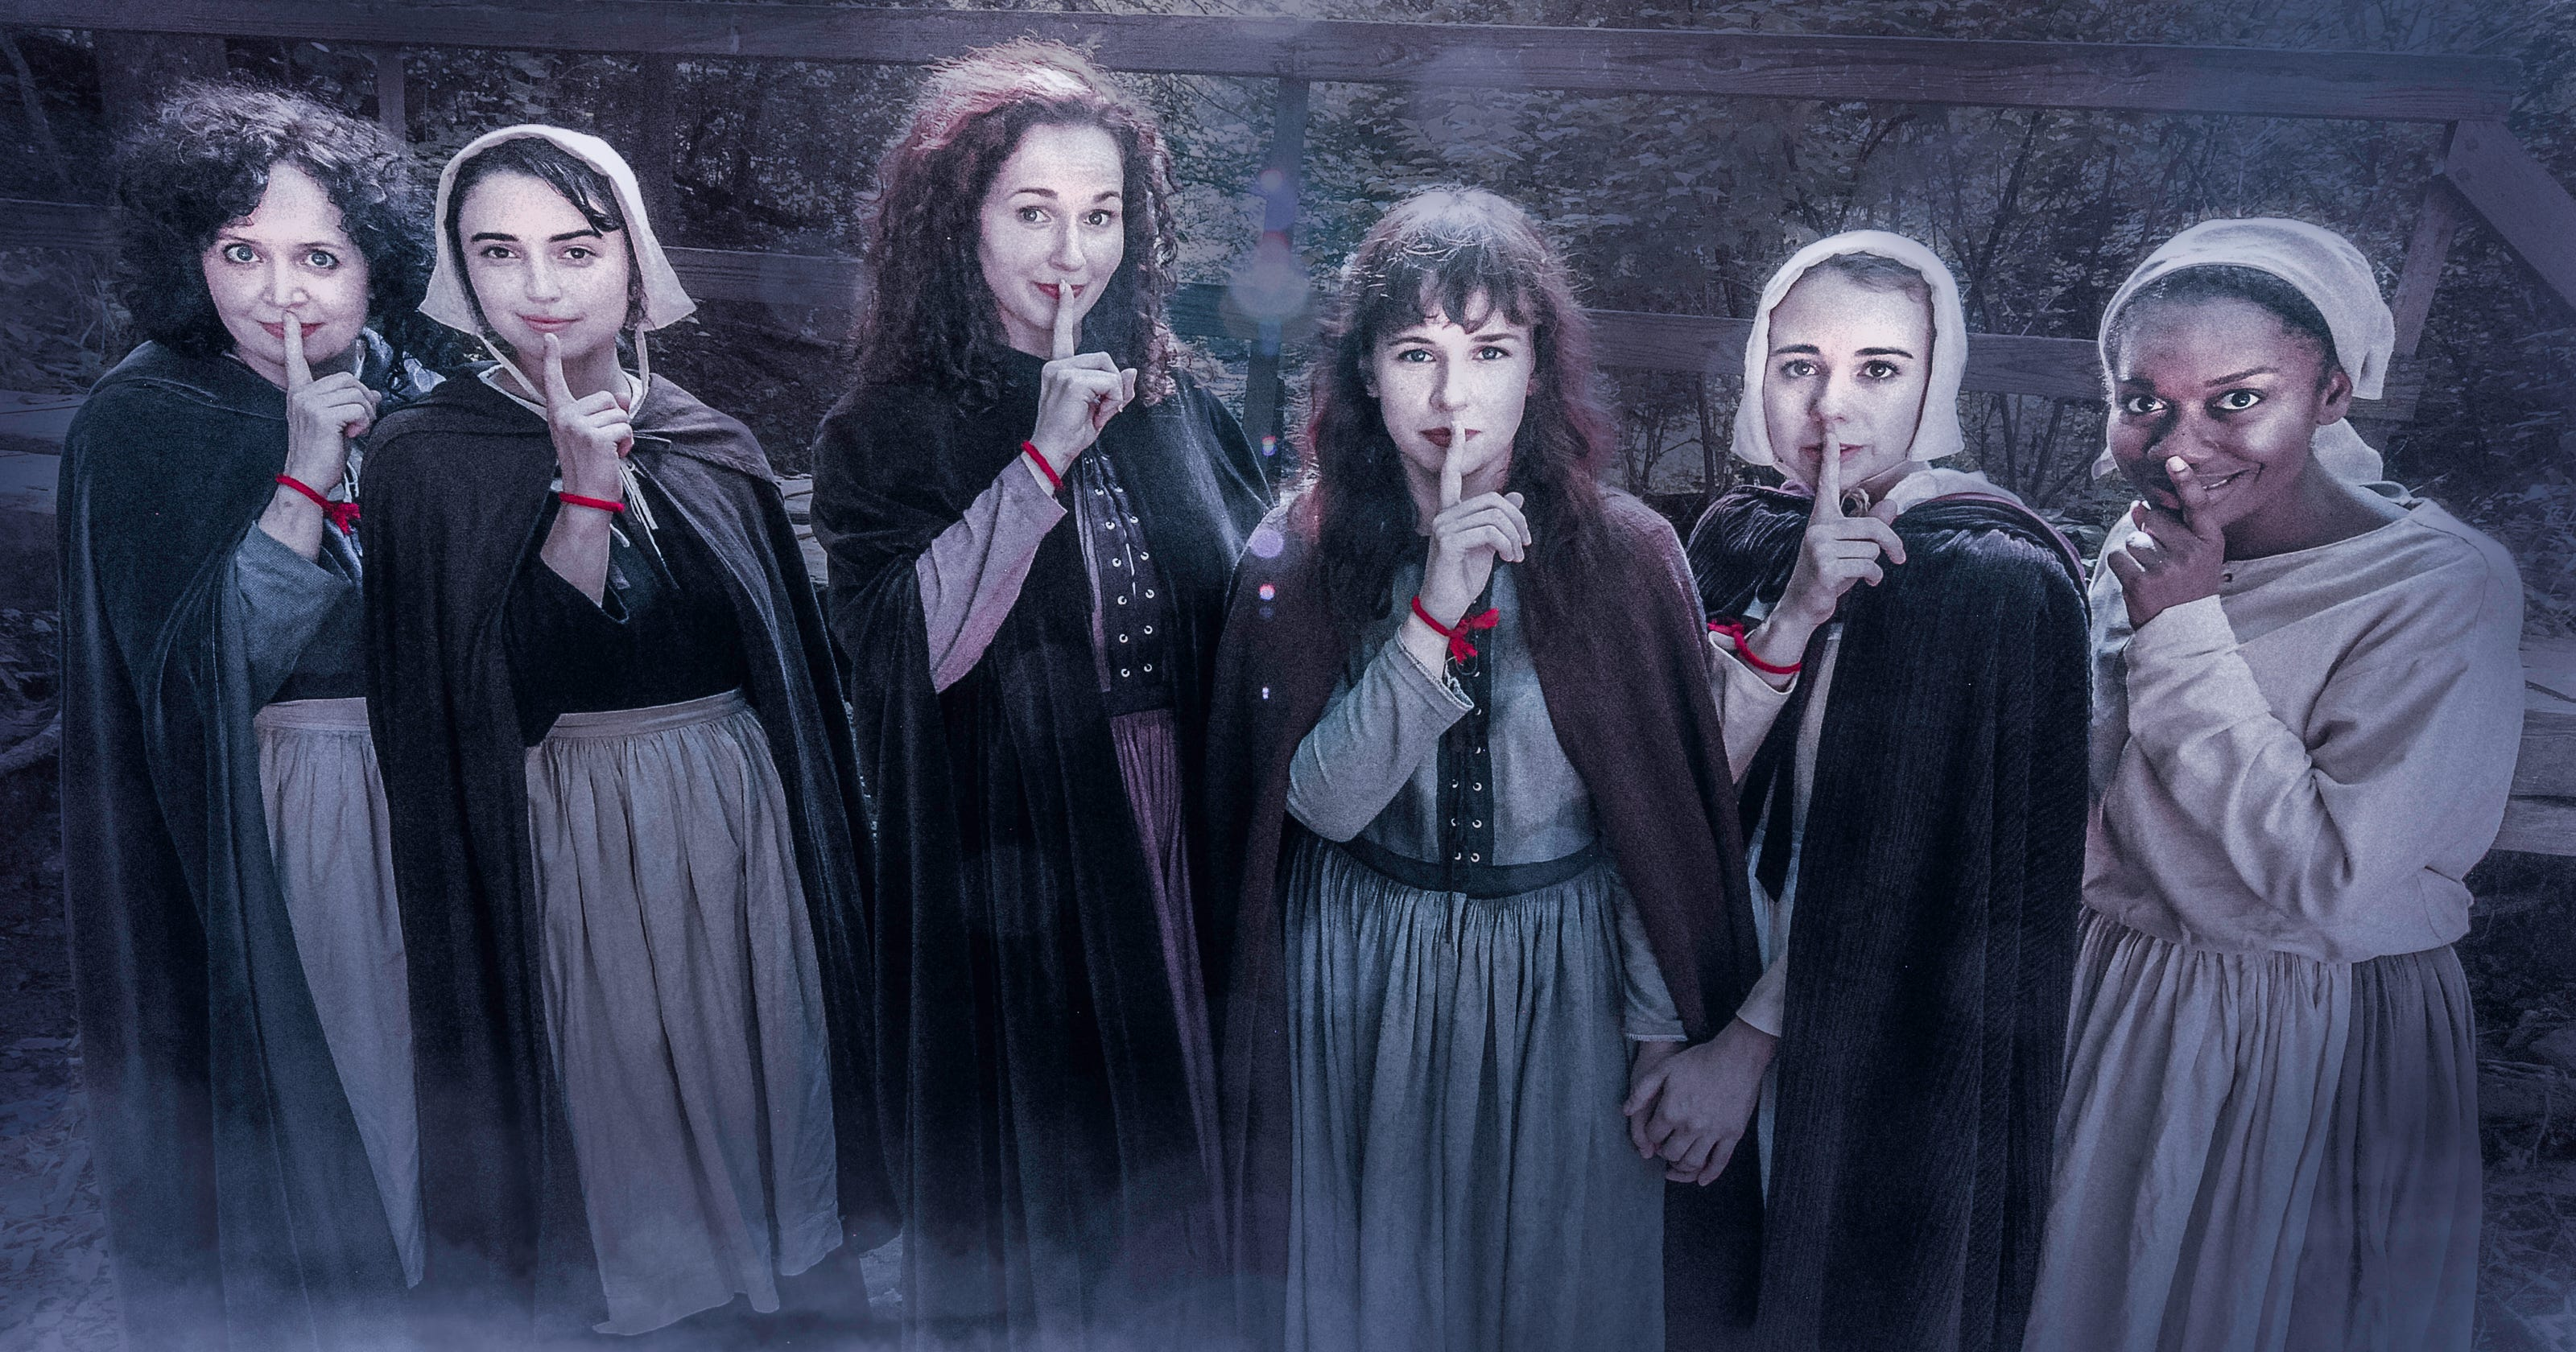 Before the witch trials: NCT opens 85th season with 'Afflicted'